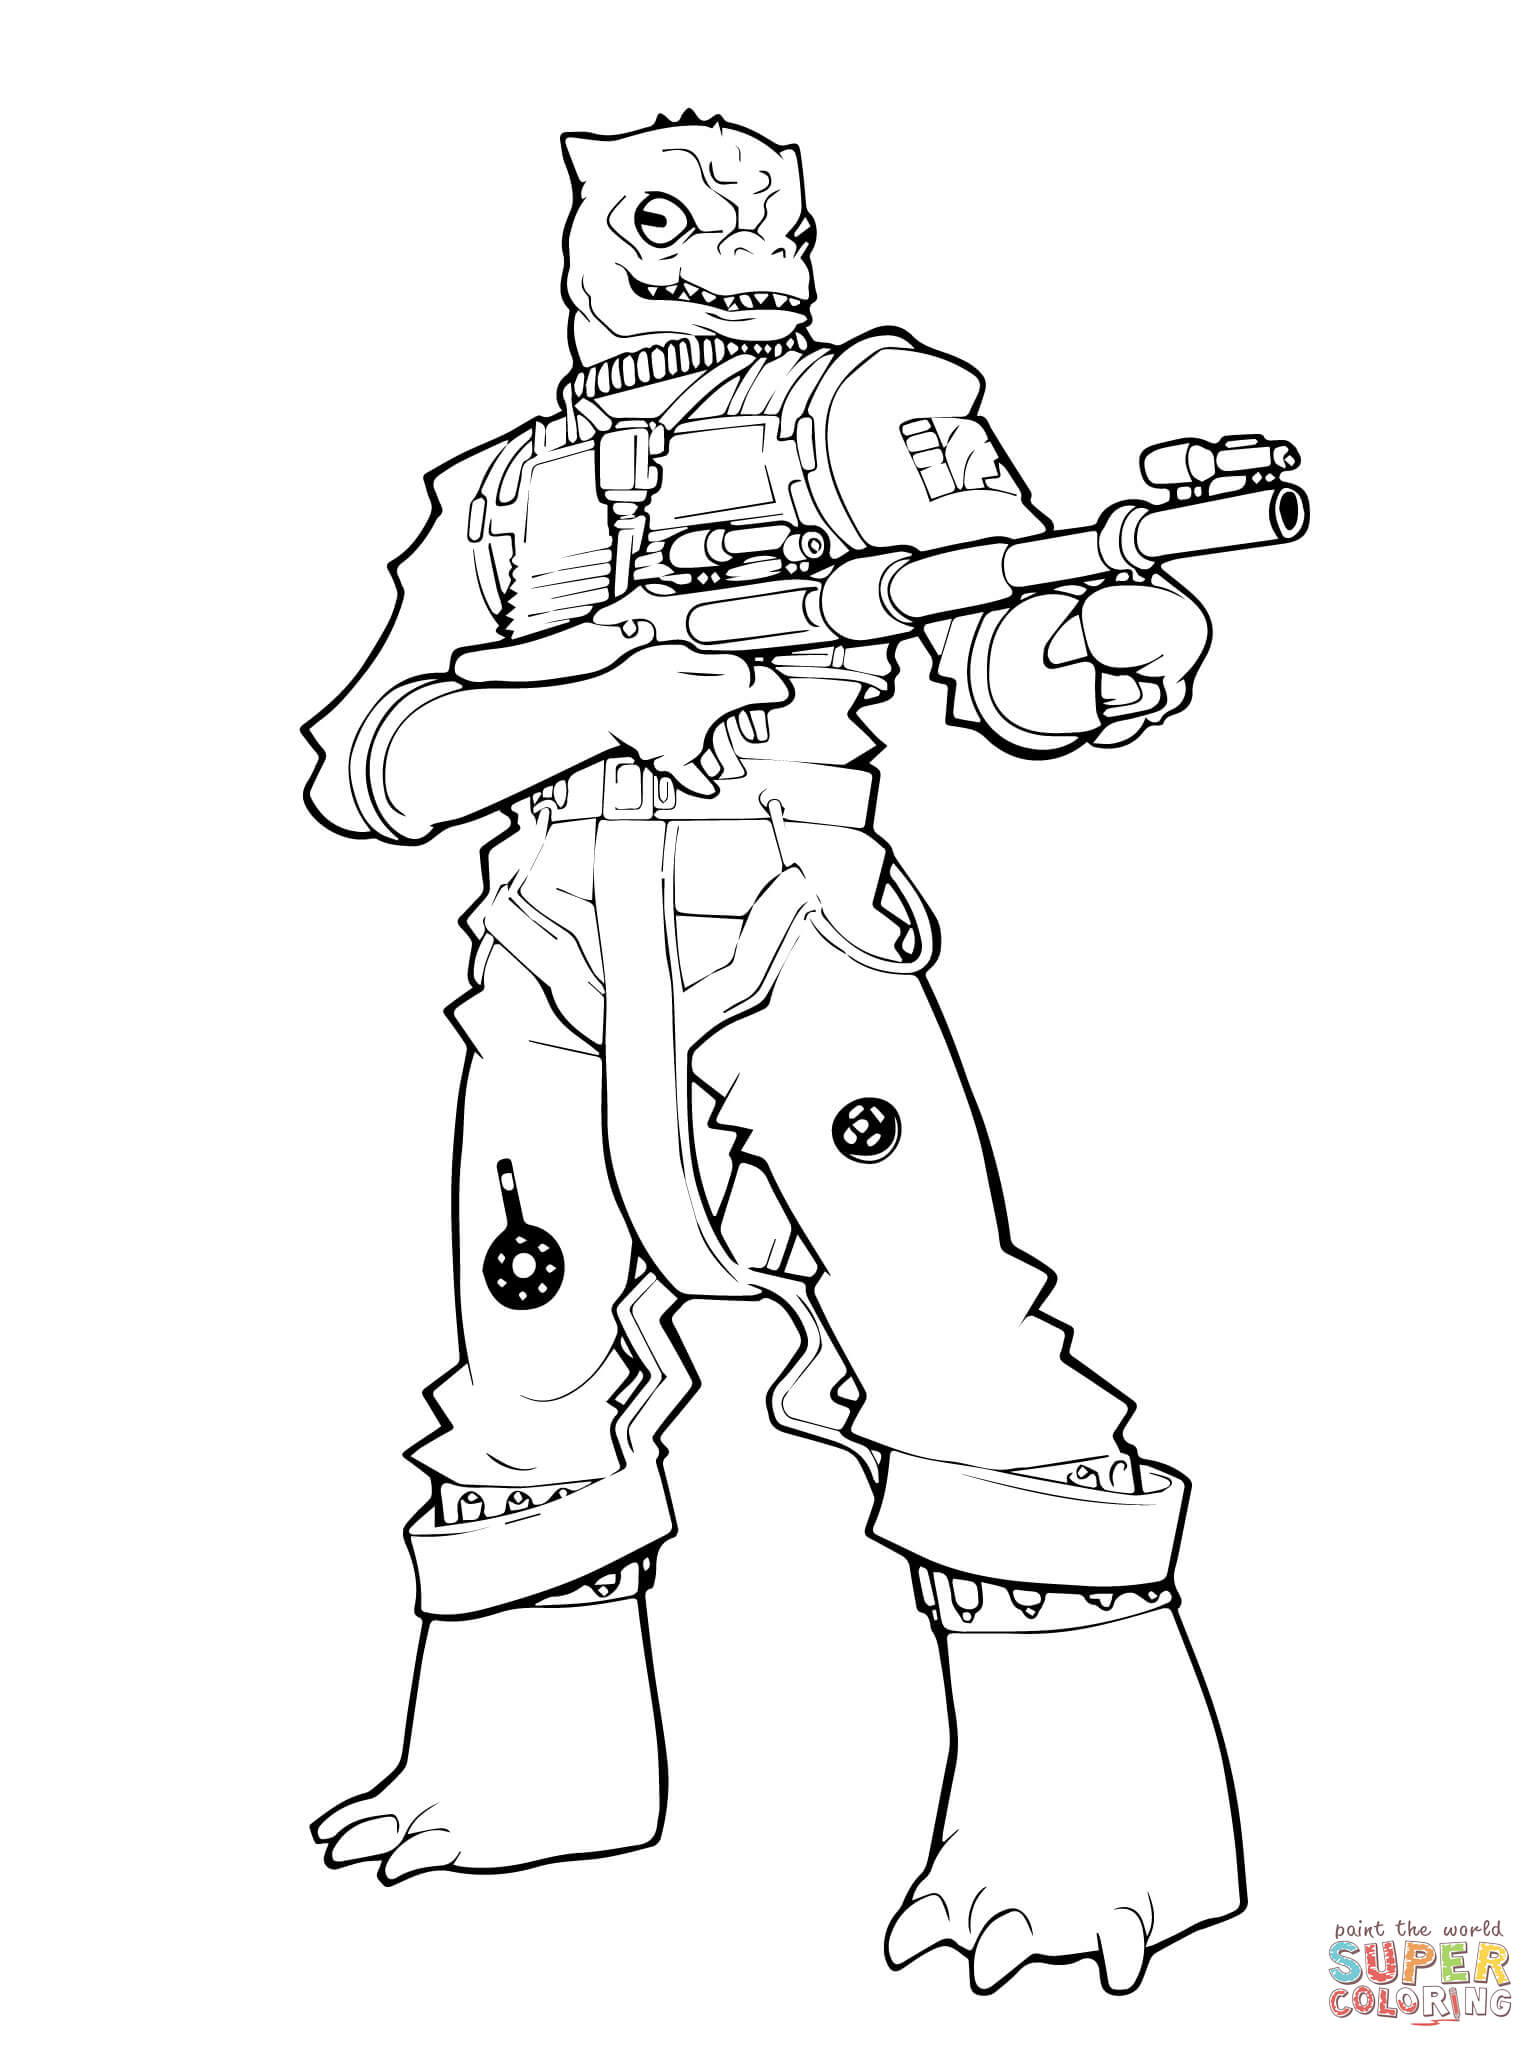 Star Wars Clone Coloring Pages The Clone Wars Coloring Pages Free Coloring Pages